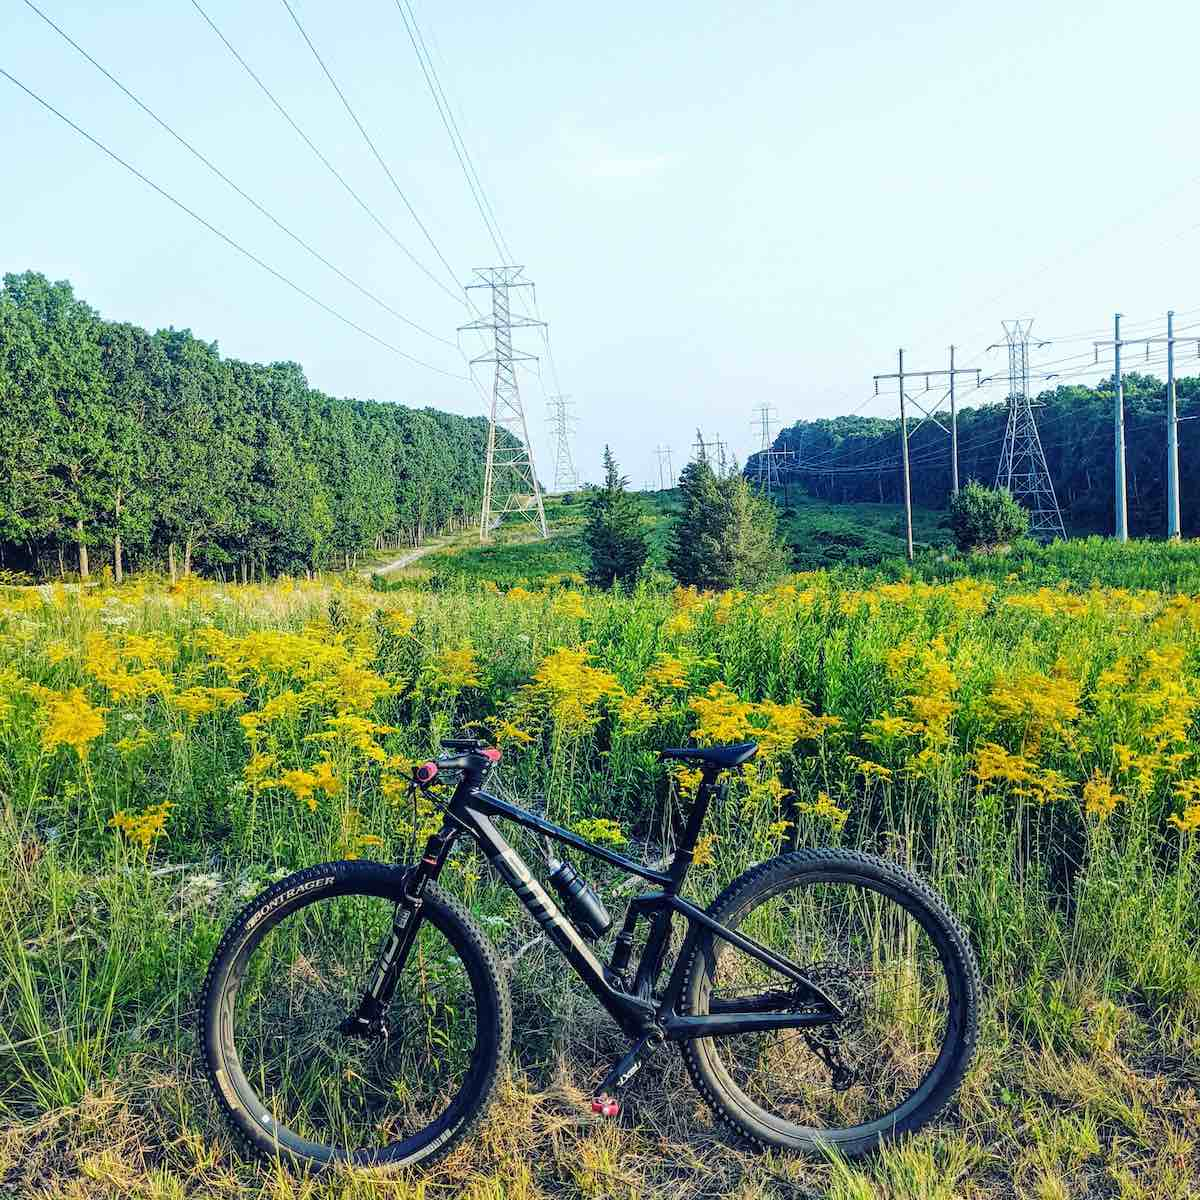 bikerumor pic of the day a bicycle is placed in front of a field of blooming golden rods underneath a power line with woods on either side. the sky is clear.